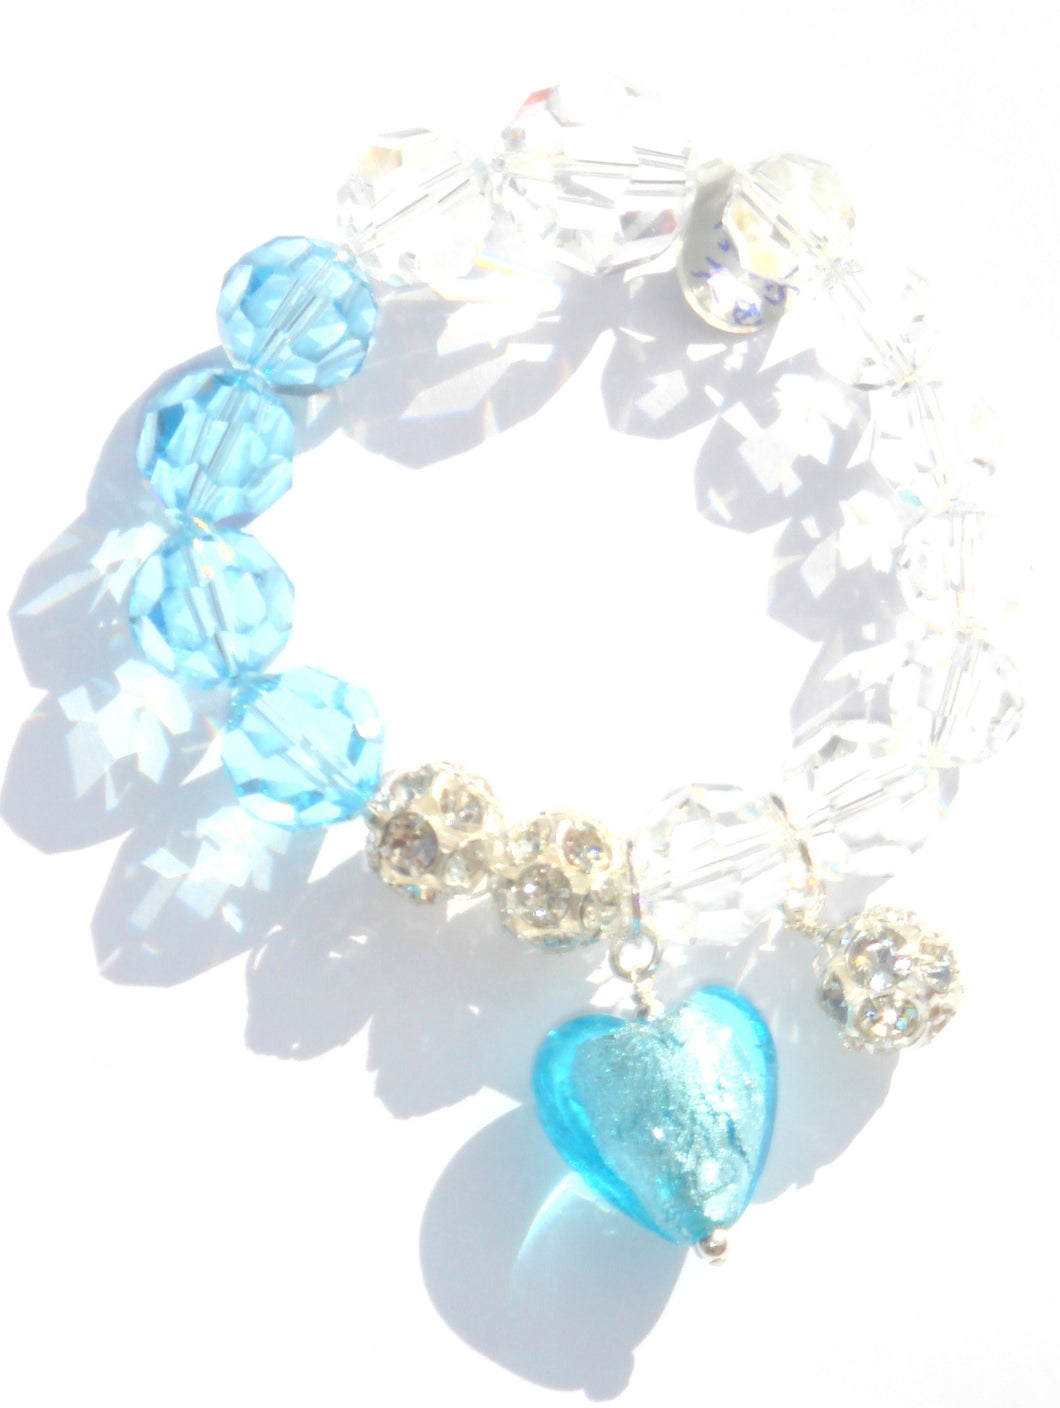 Flora Swarovski® Faceted Aquamarine and Clear Crystal Bracelet with Heart and Crystal Ball Drops